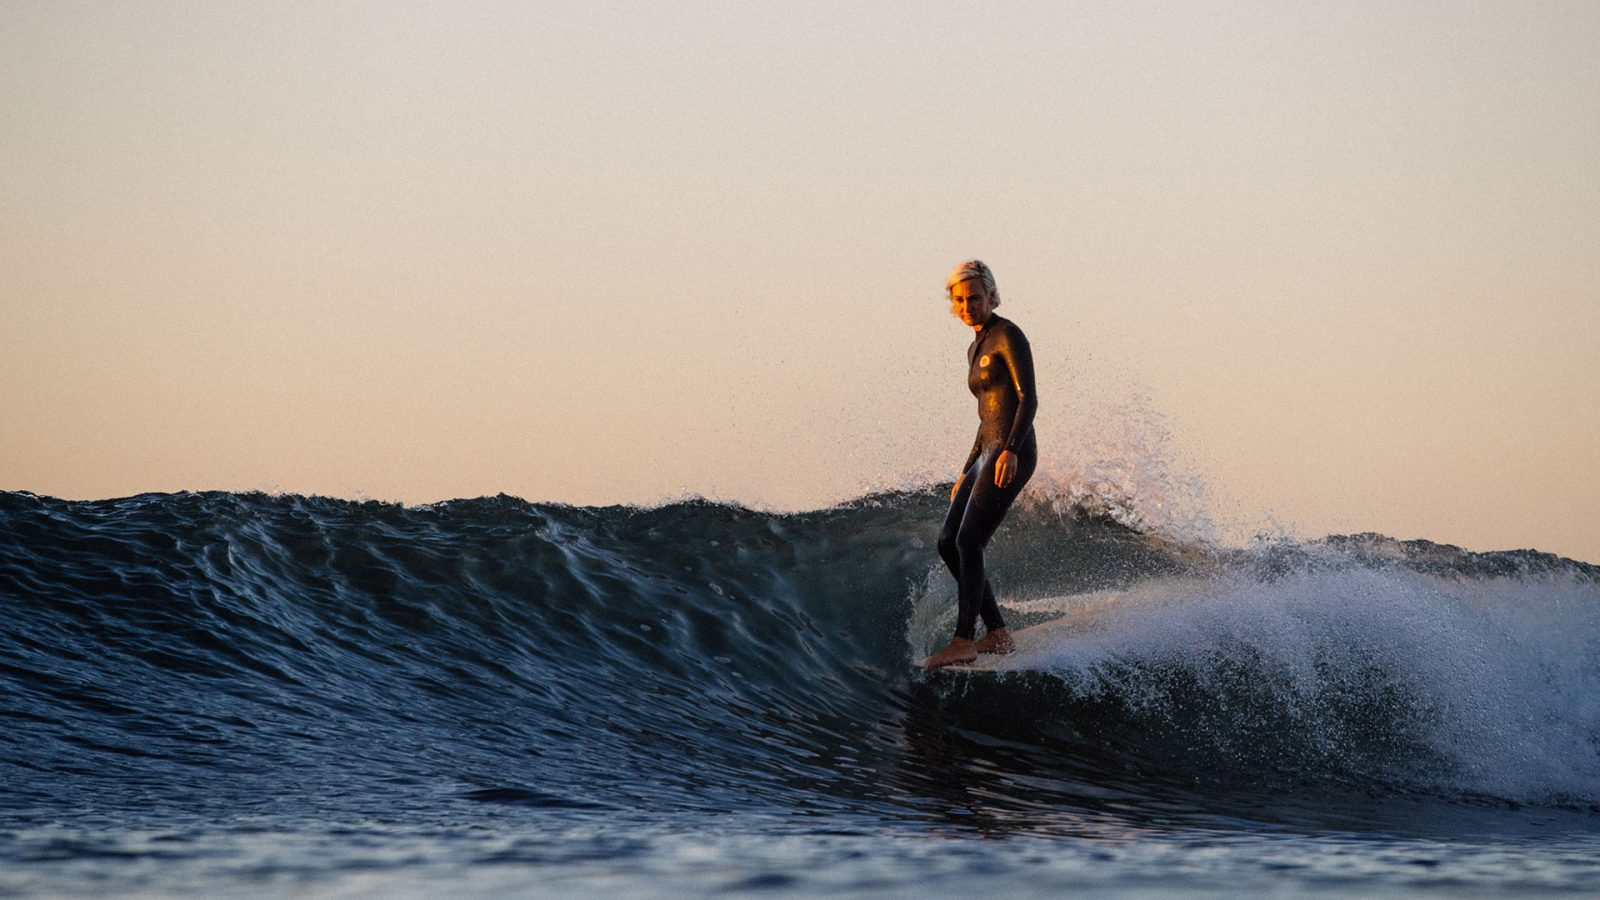 Cardiff California 12 Of The Best Longboarding Waves For Surfers